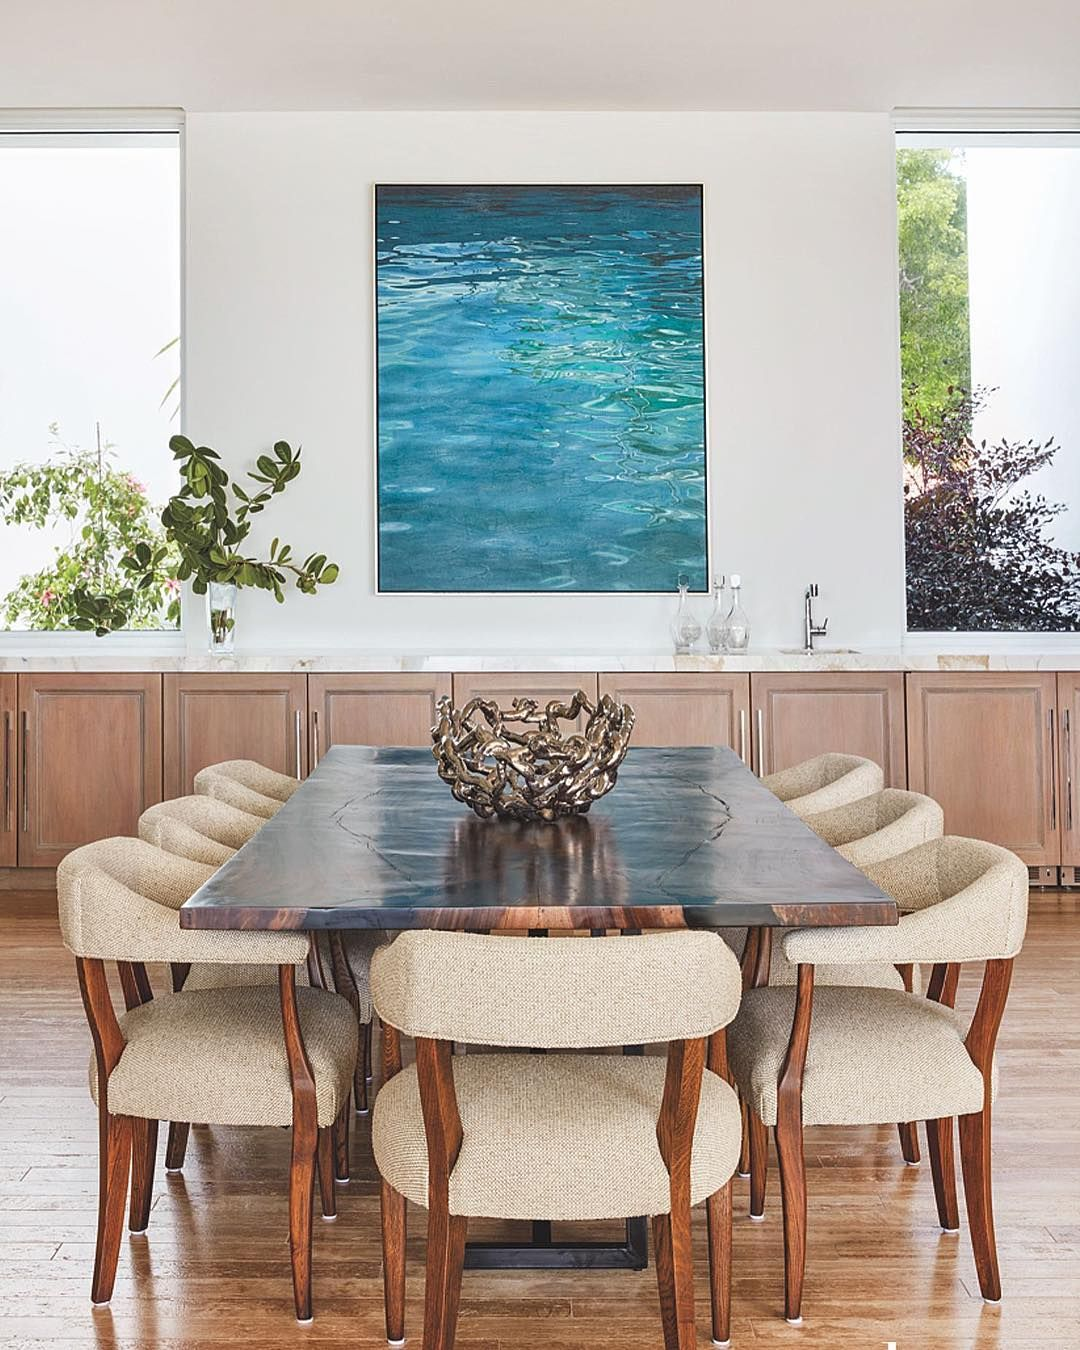 20 Tropical Dining Room Ideas For 2018: Dinner And A View #LuxeAtHome. @sandow